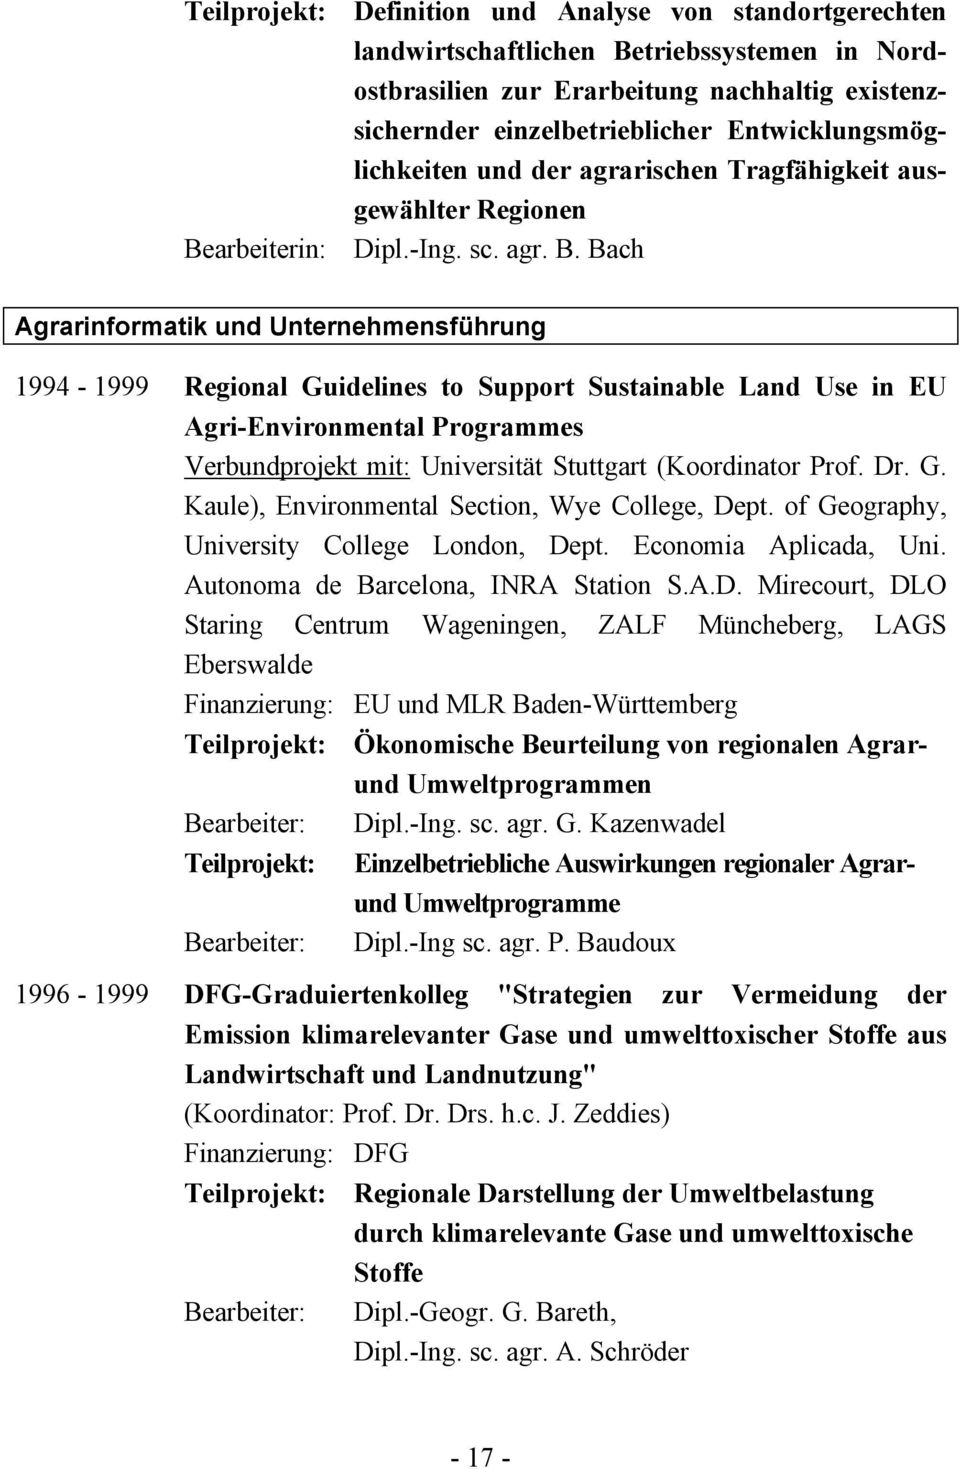 Bach Agrarinformatik und Unternehmensführung 1994-1999 Regional Guidelines to Support Sustainable Land Use in EU Agri-Environmental Programmes Verbundprojekt mit: Universität Stuttgart (Koordinator